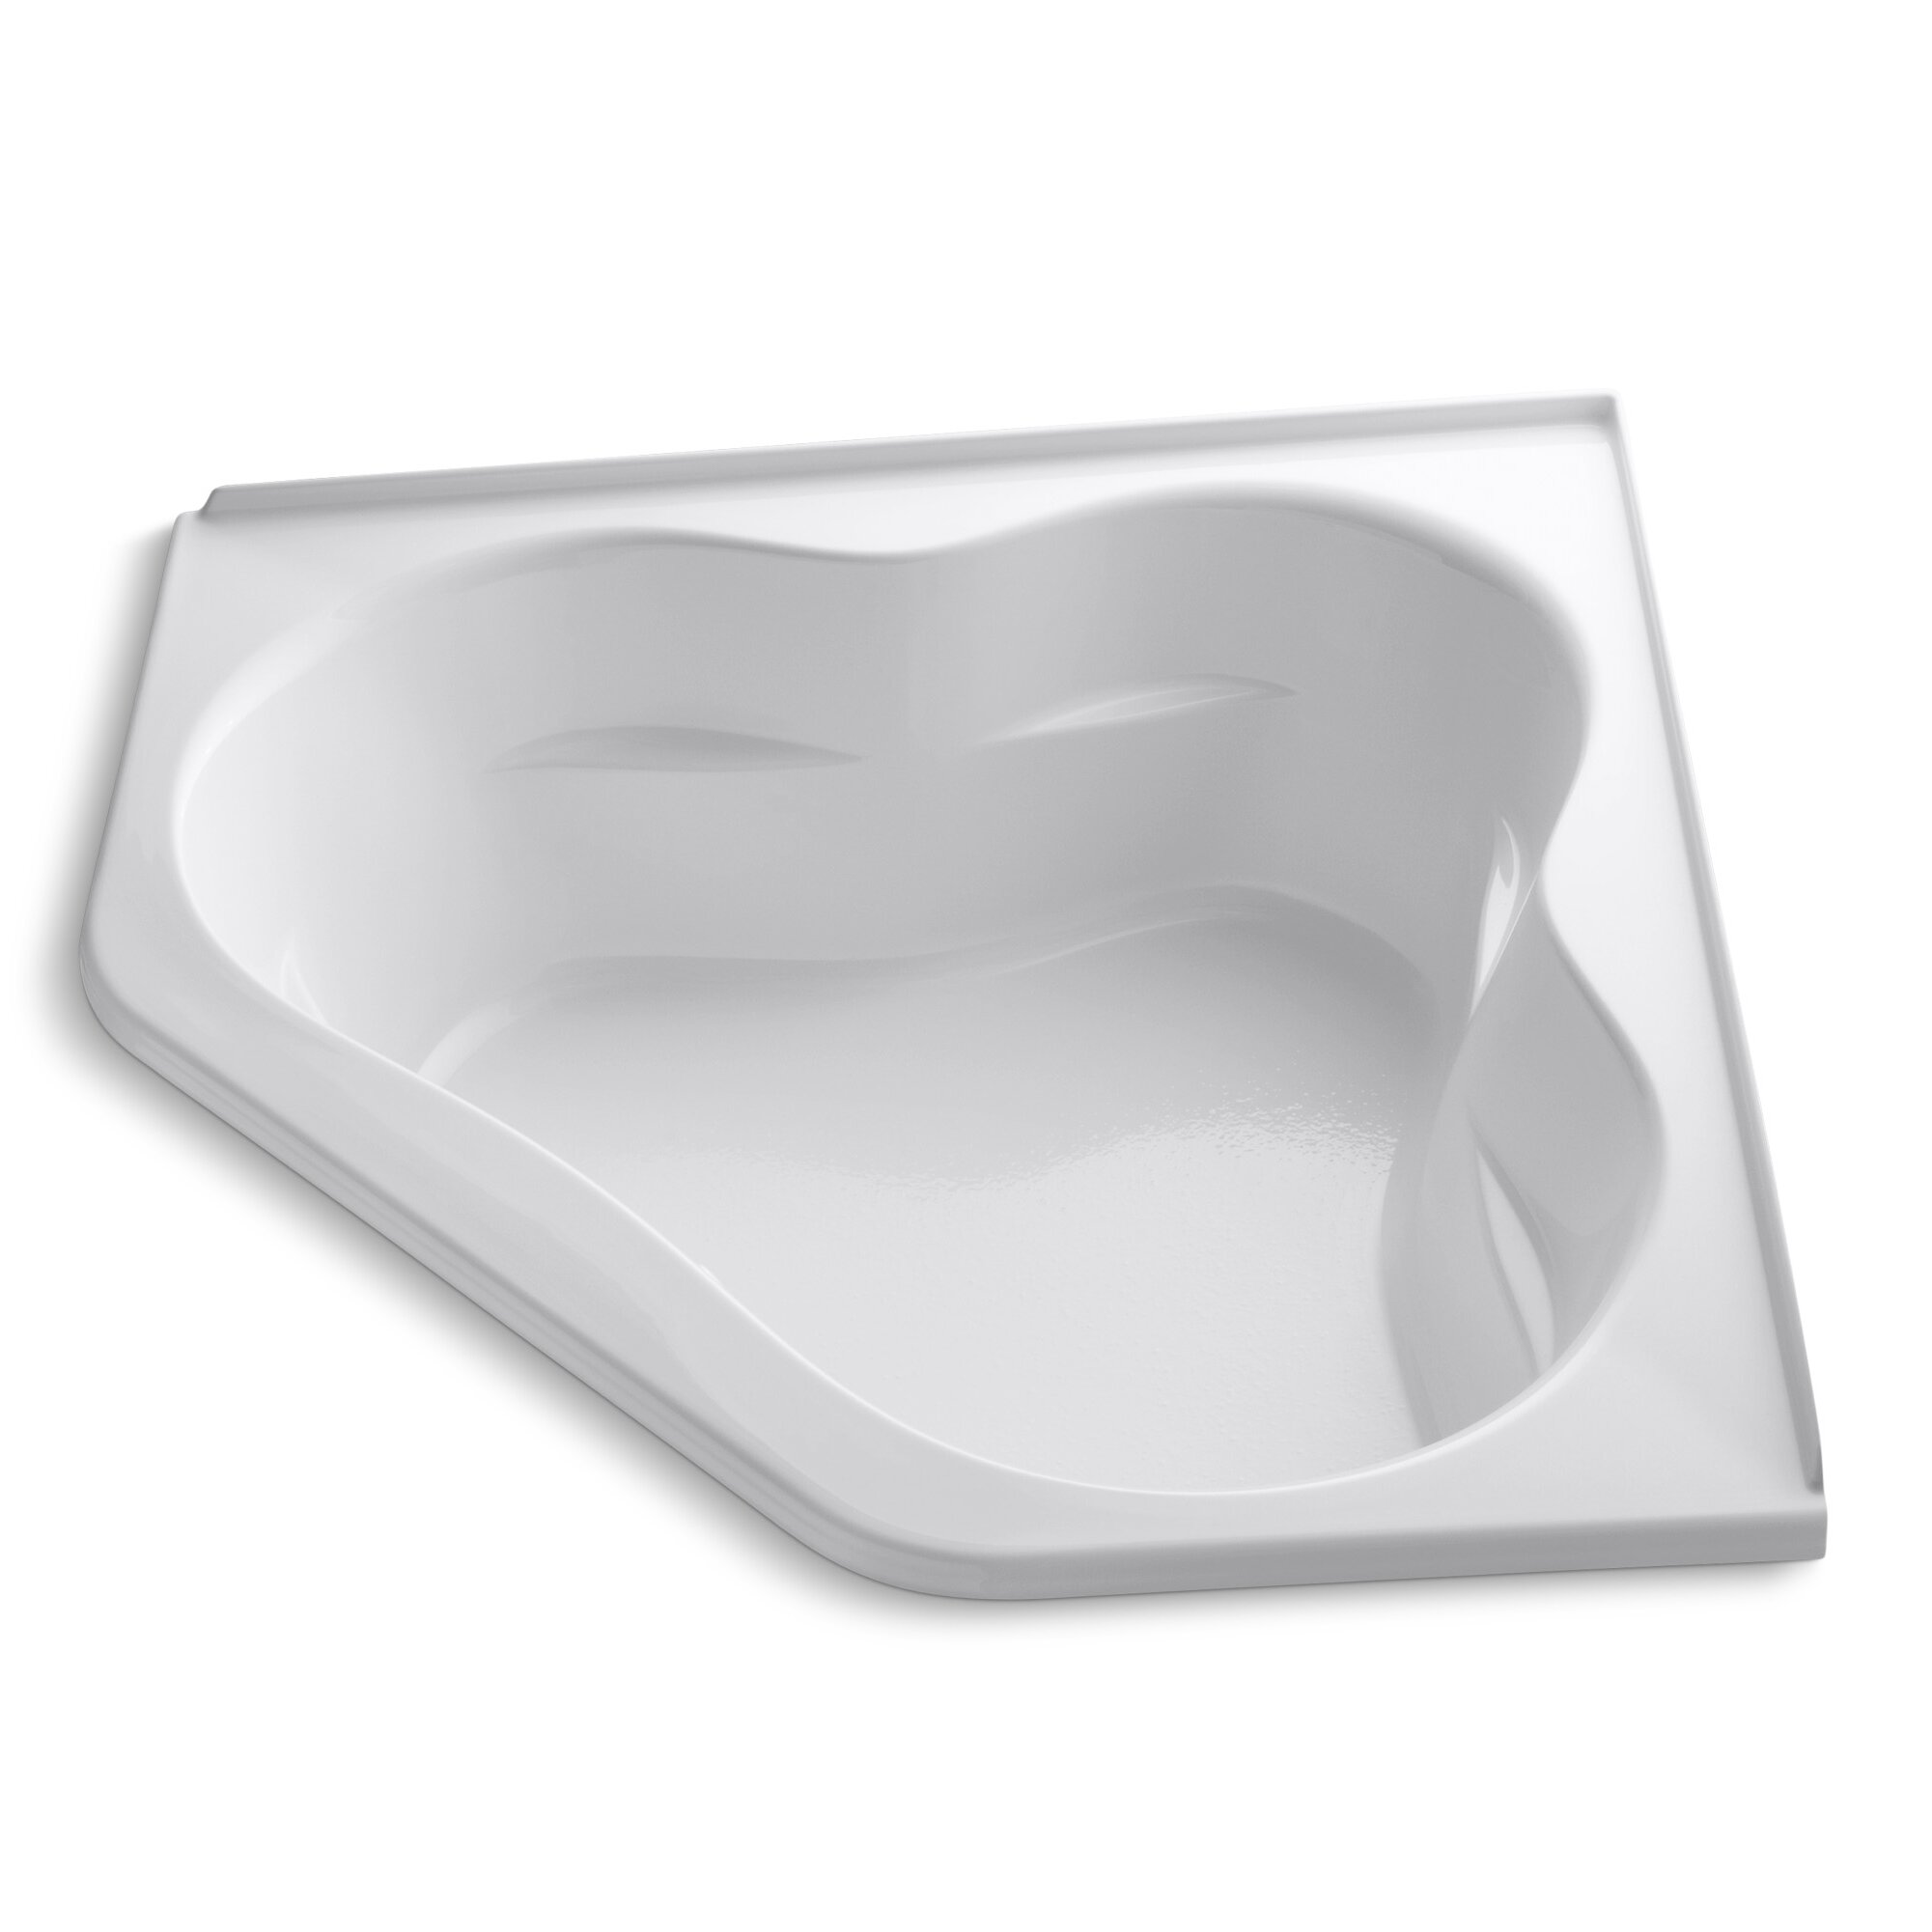 kohler folee 60 x 60 soaking bathtub reviews wayfair